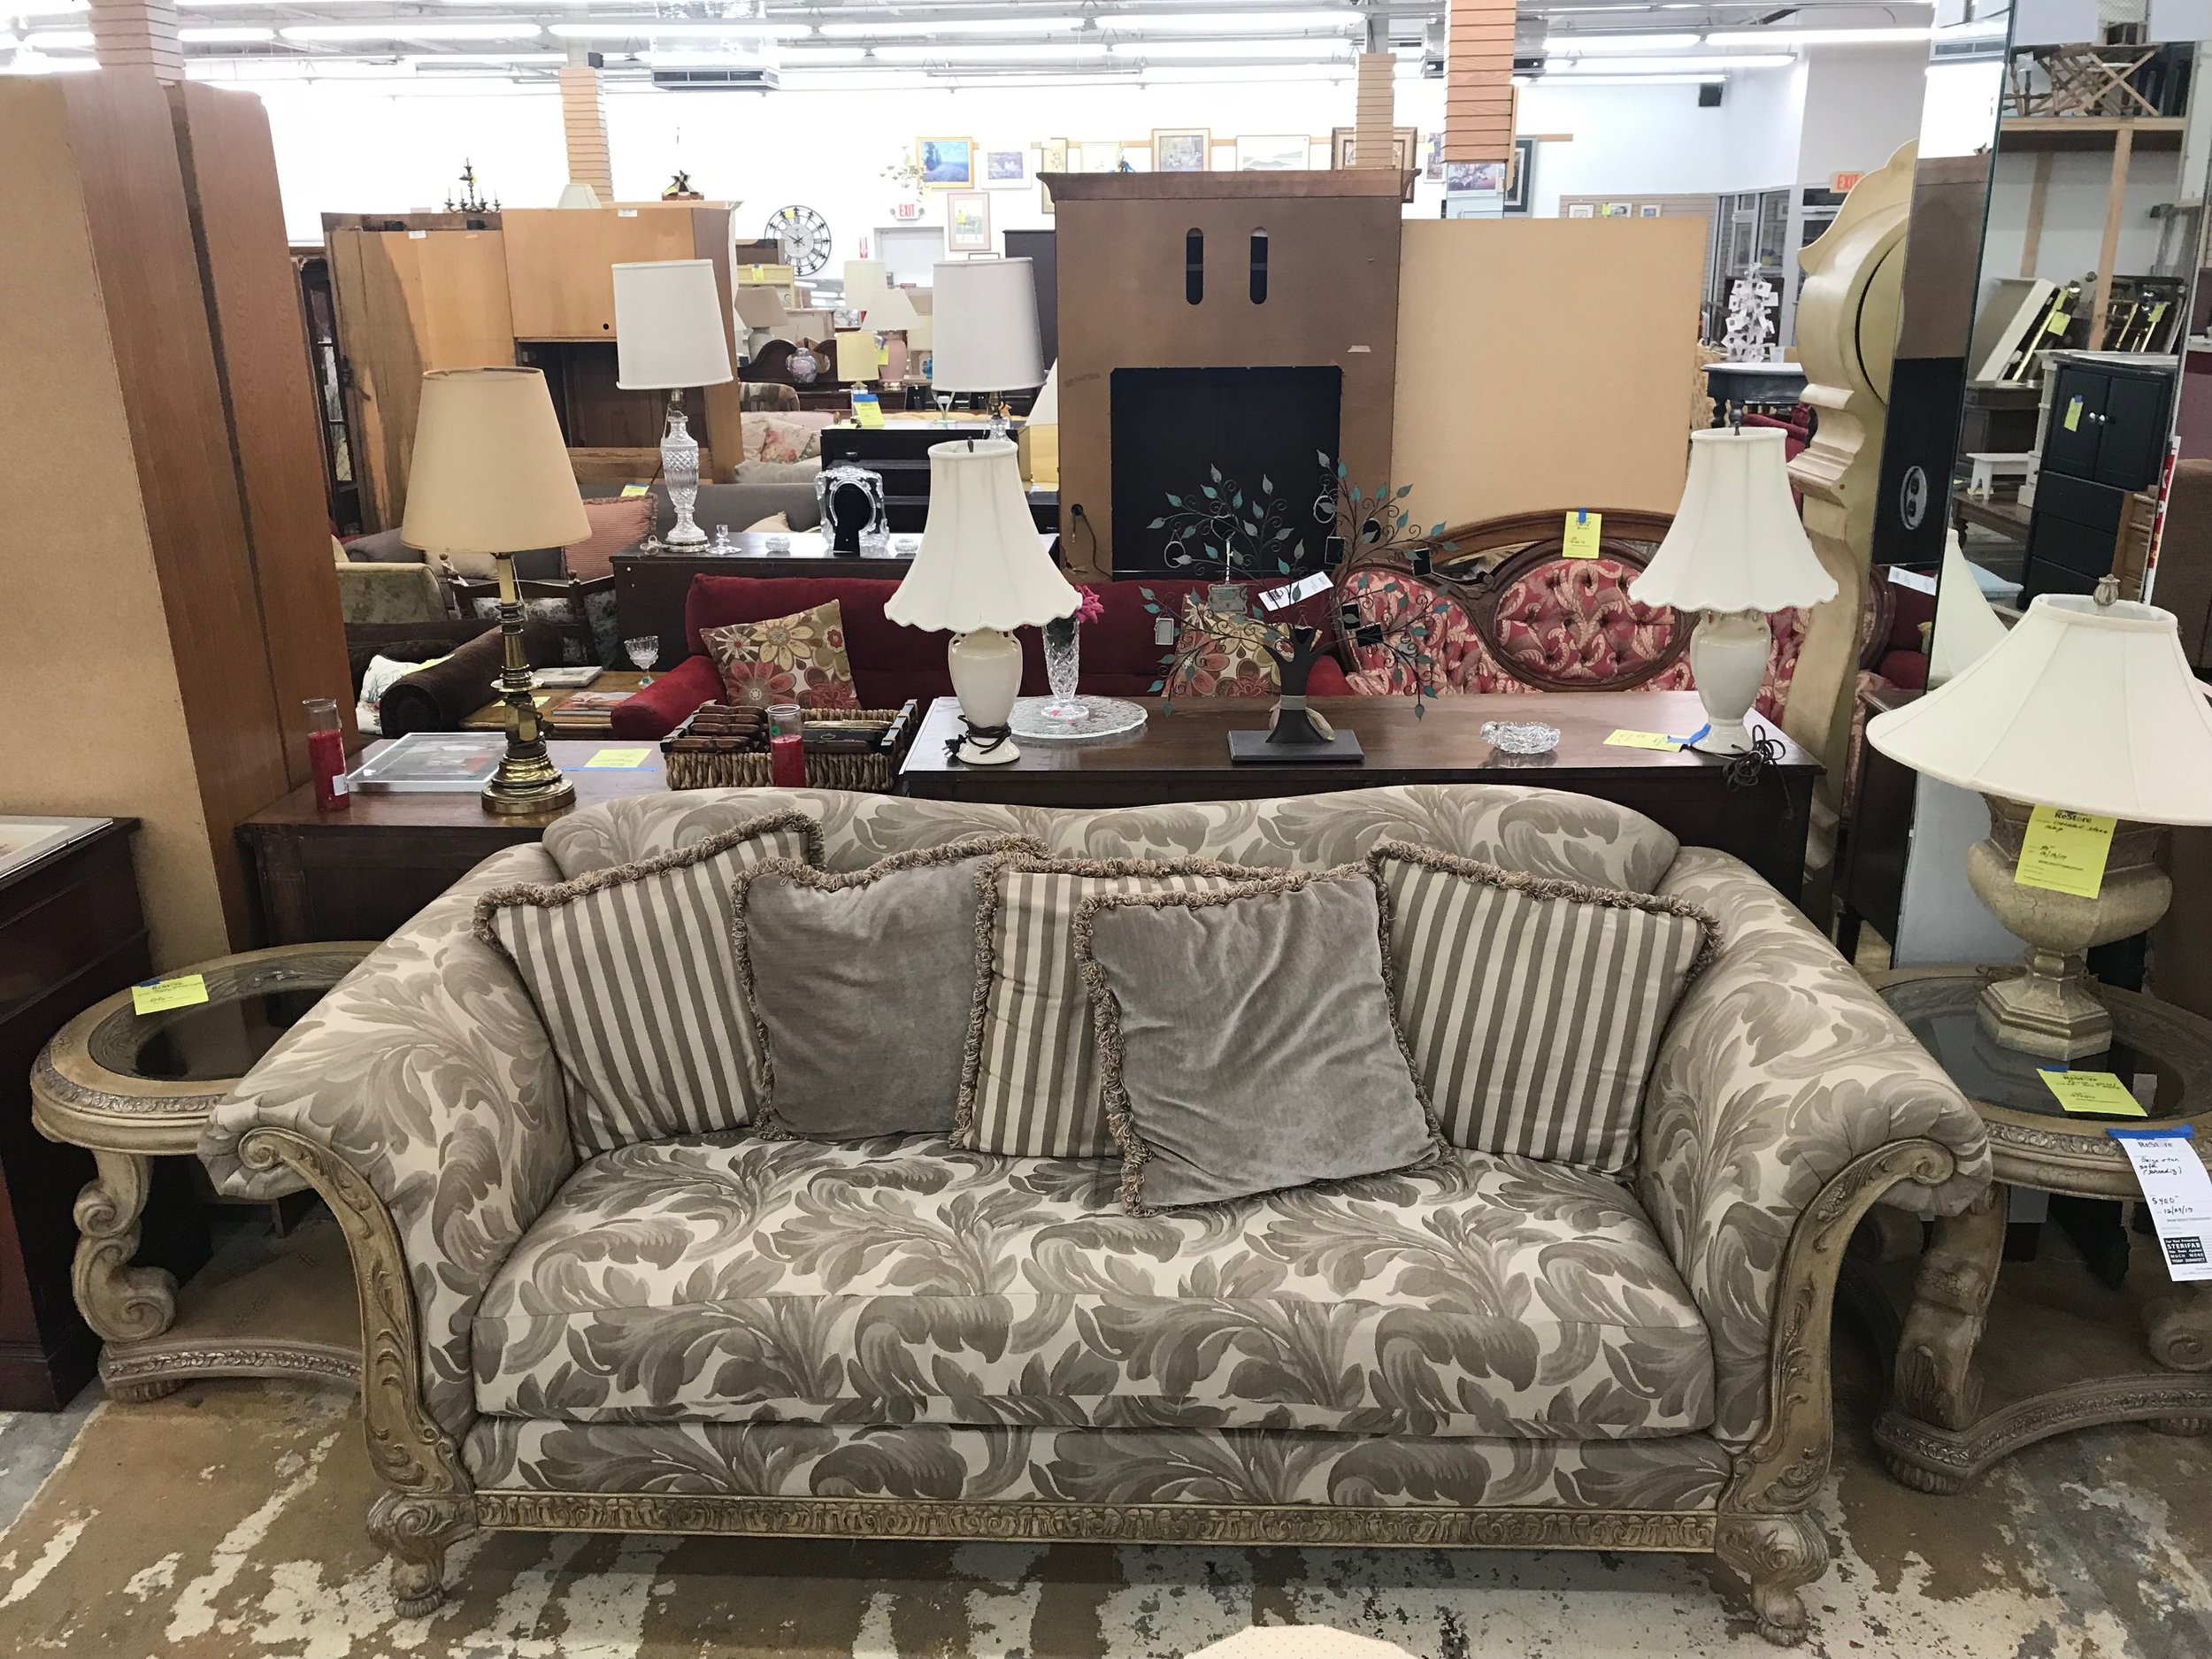 Donate Furniture Near Me Pick Up Donate Furniture Habitat For Humanity Restore Bergen County In